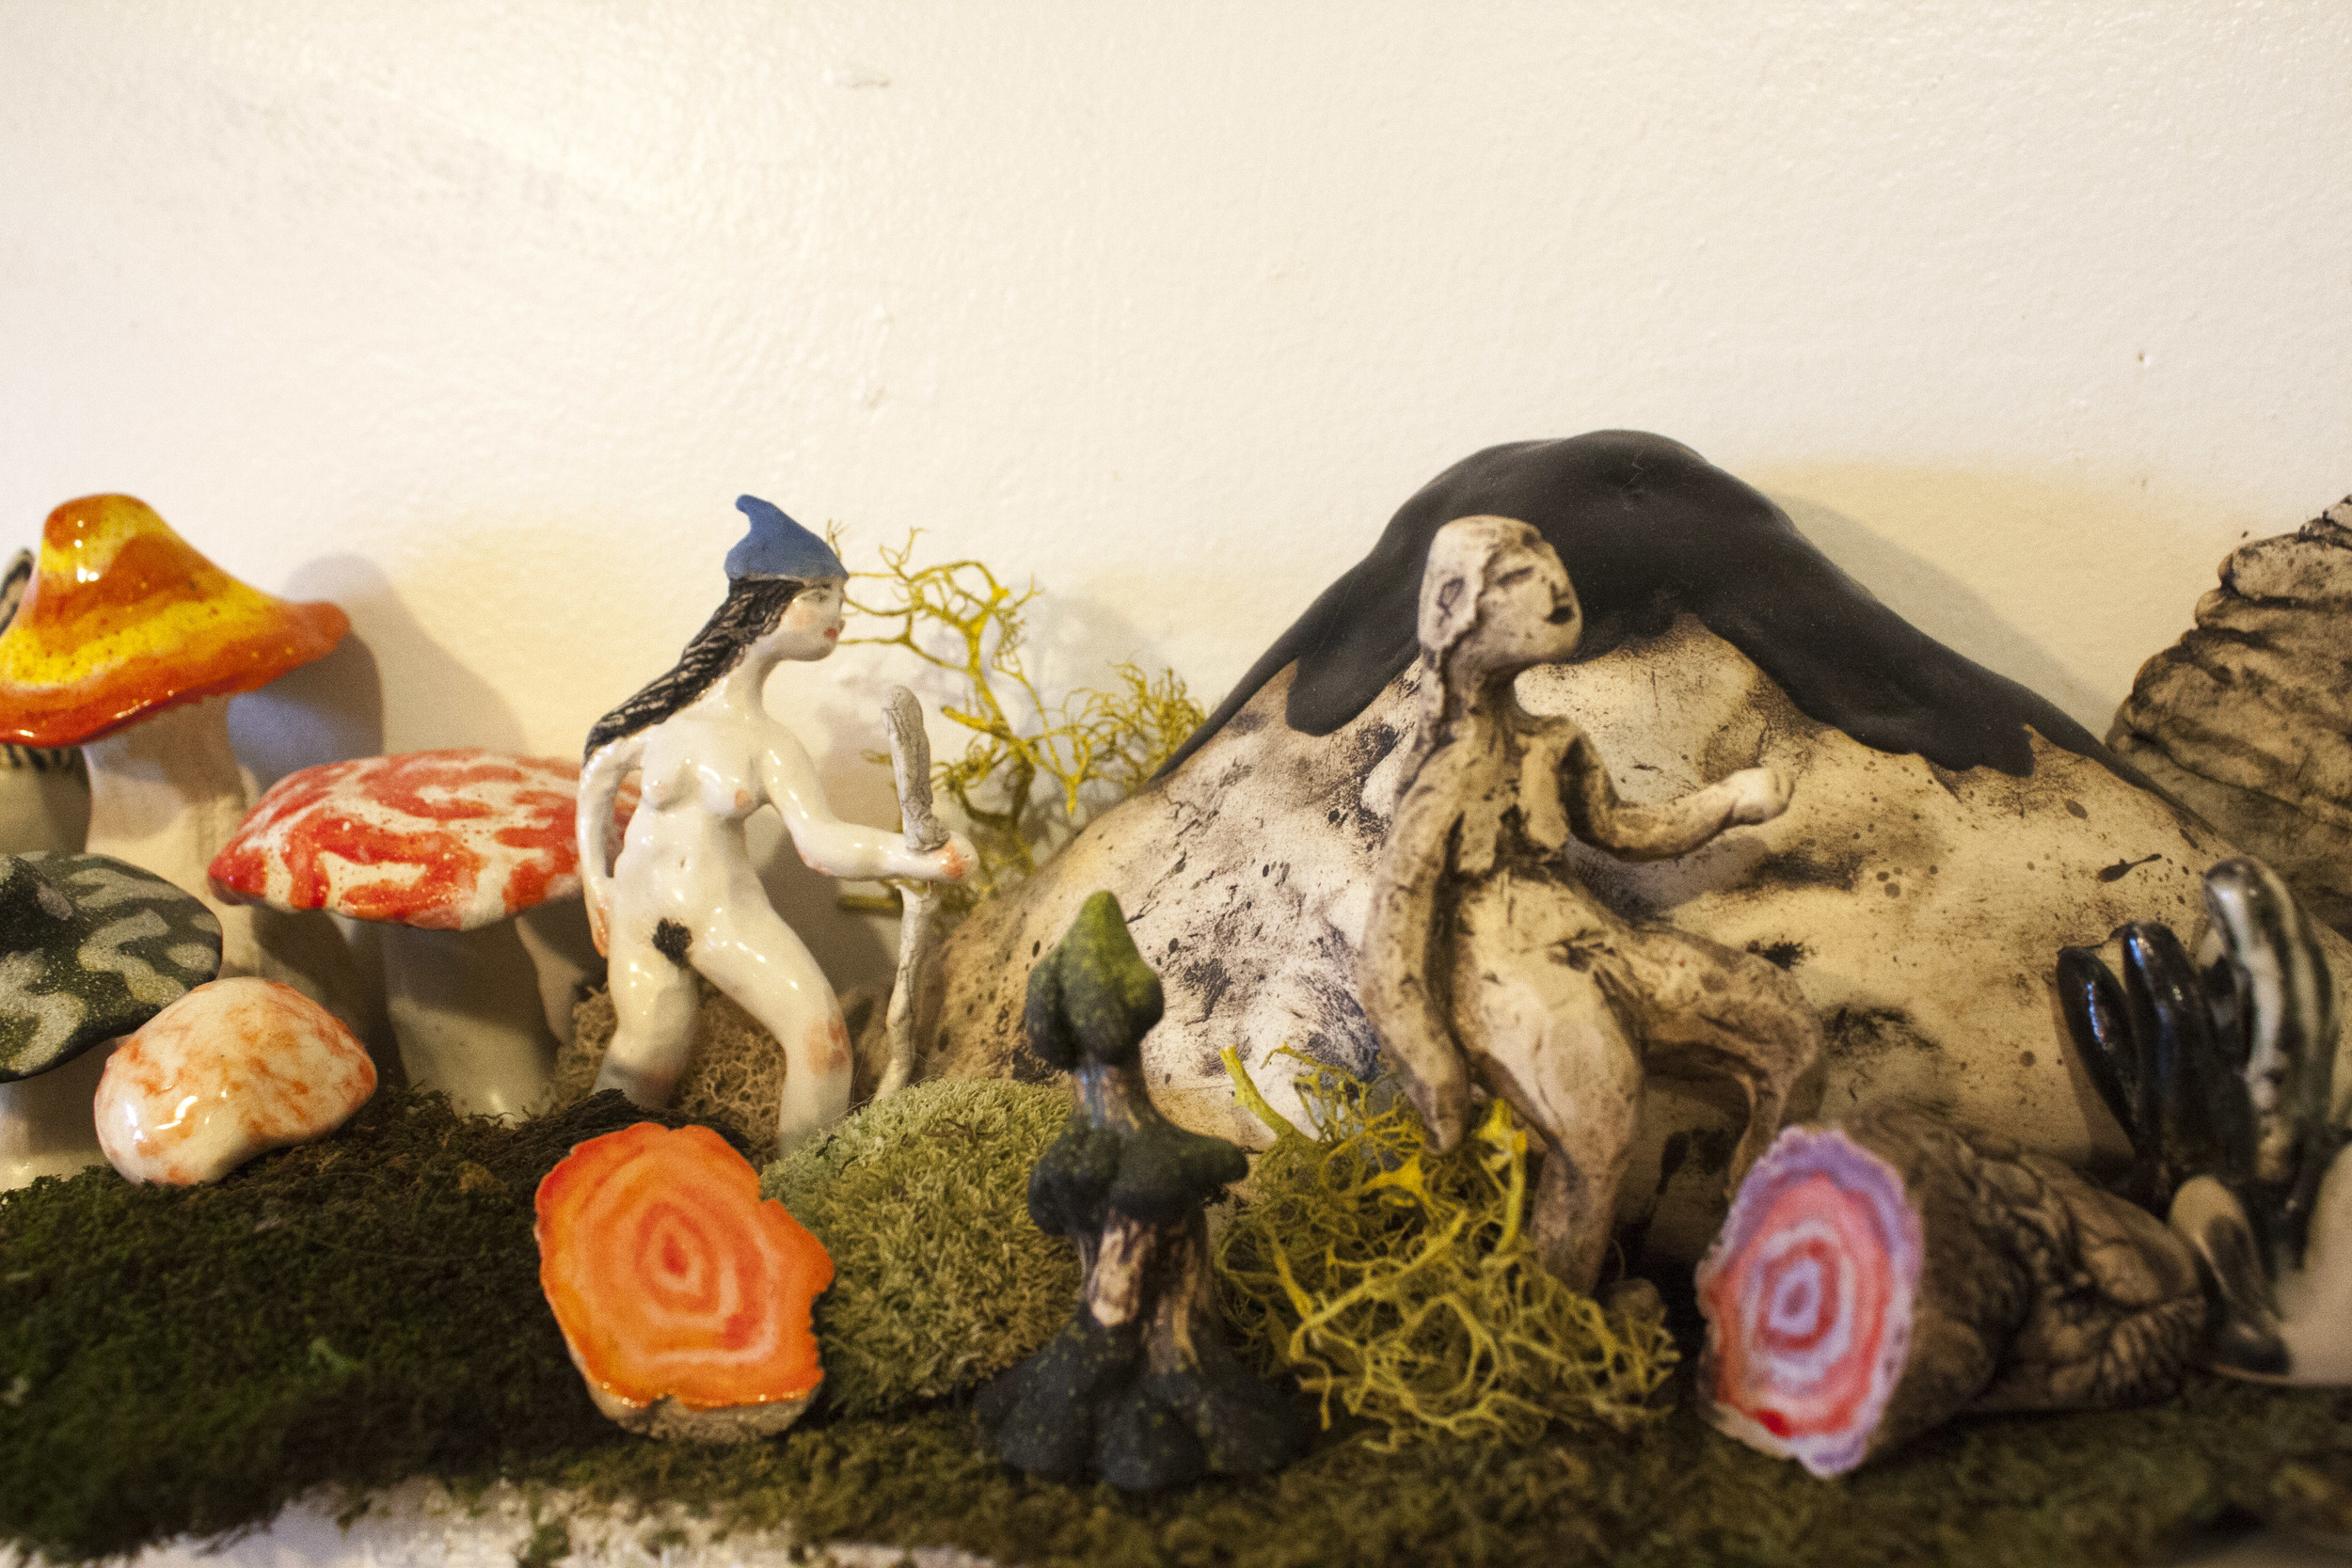 Some of the ceramic work featured at last fall's nuit blanche.